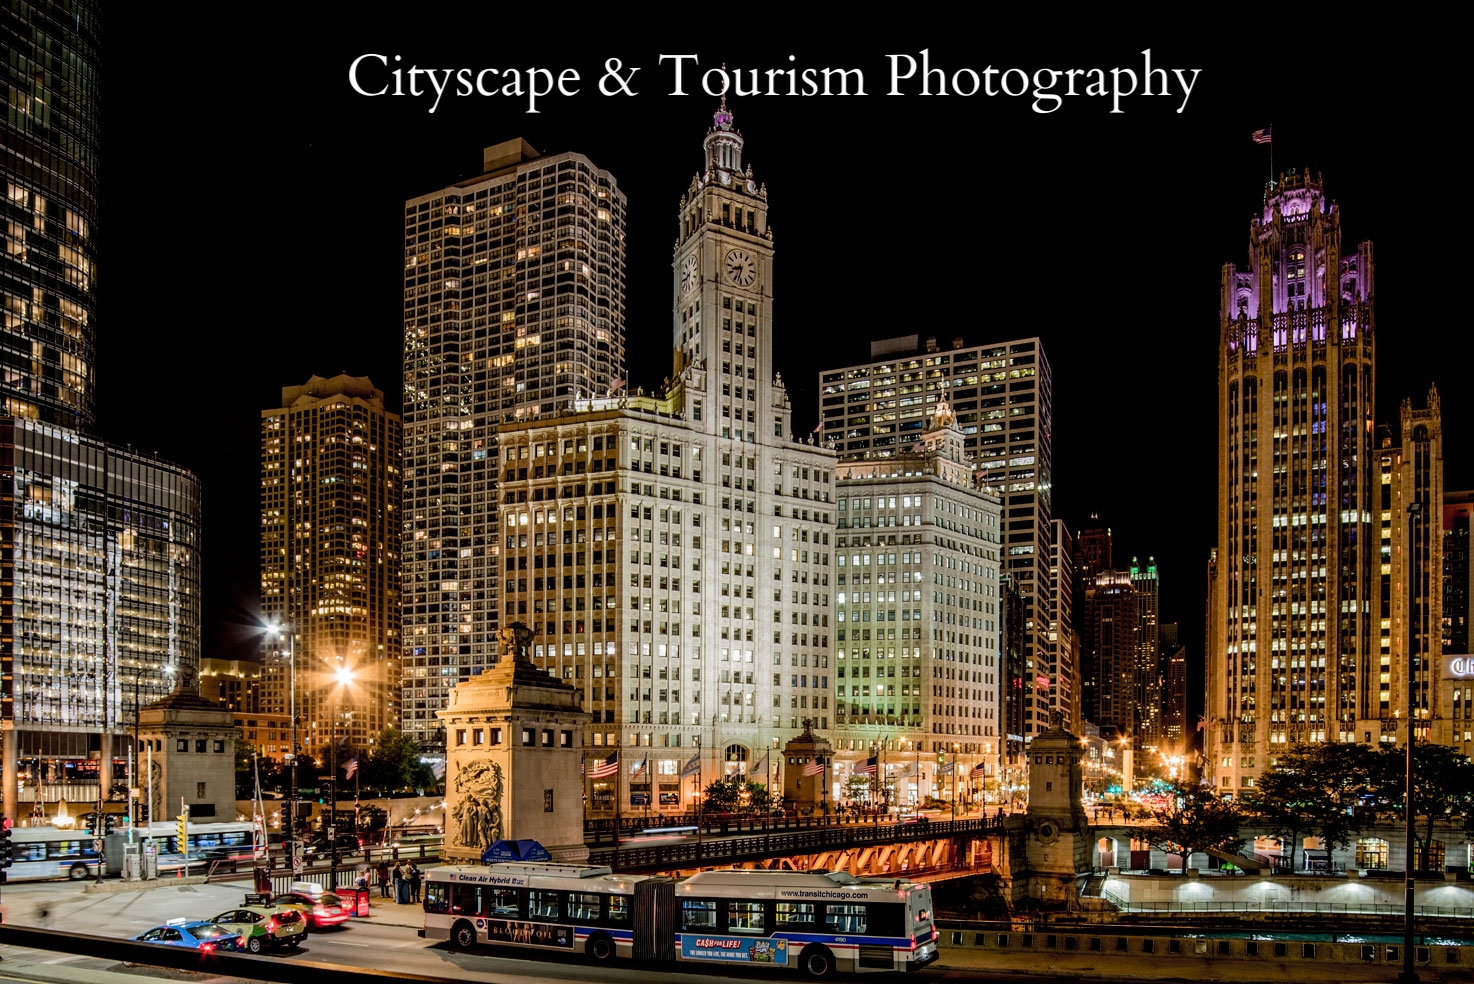 jeff_siegel_an_eye_for_business_chicago_night_4_web.jpg